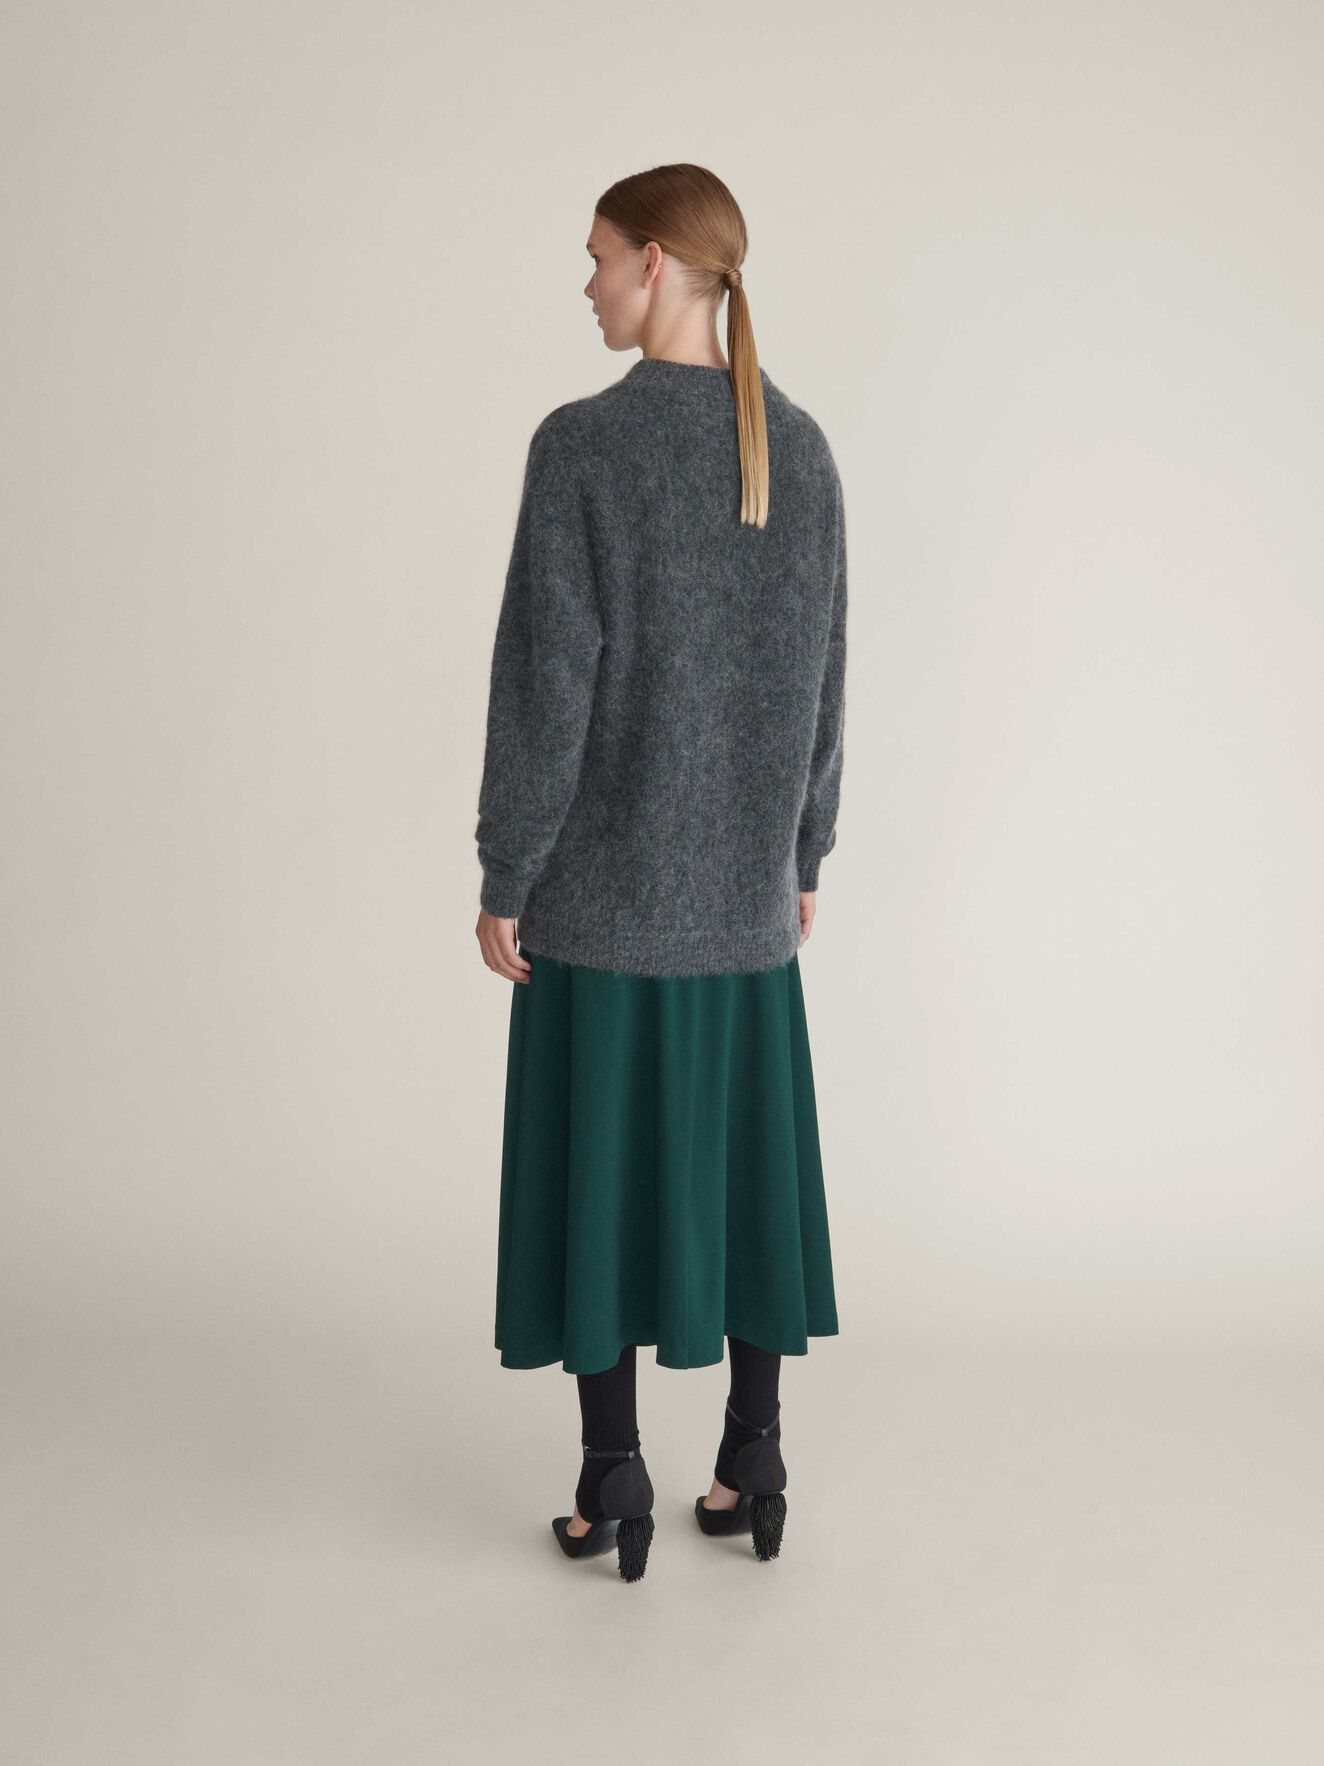 Cassio Pullover in Iron Grey from Tiger of Sweden